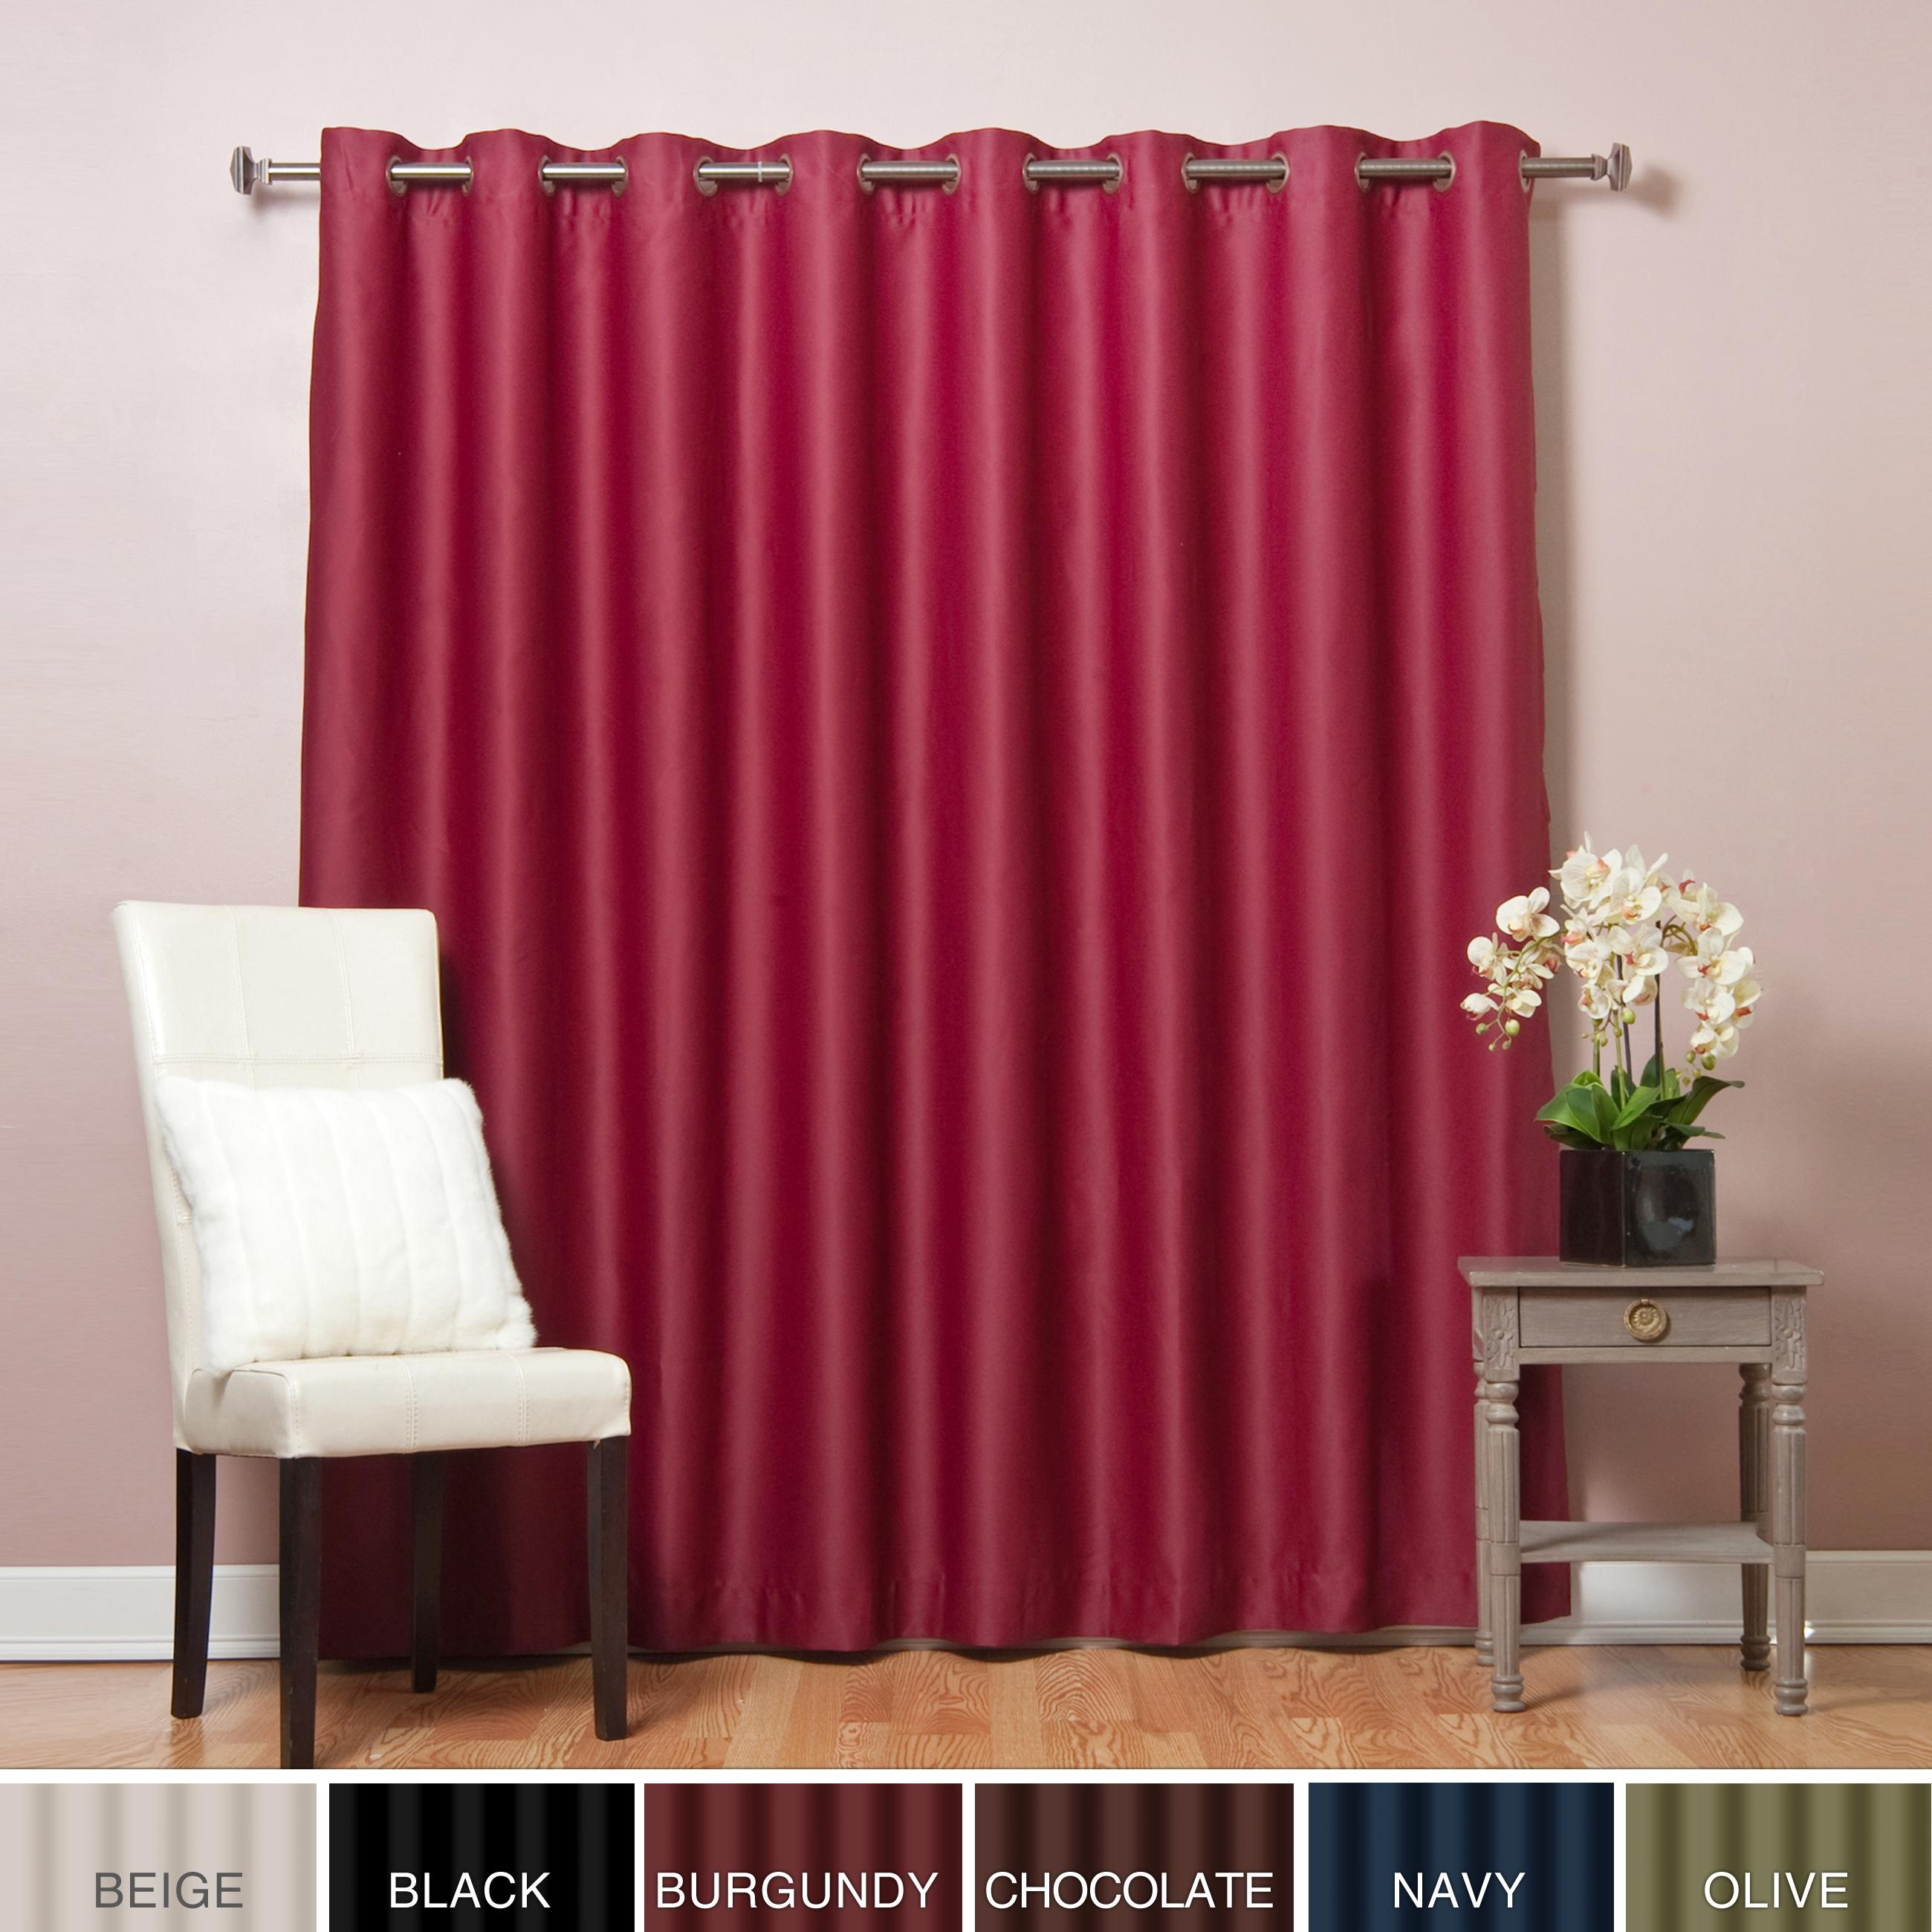 Ideas For Extra Wide Drapes Design 17745 Intended For Extra Wide Thermal Curtains (Image 12 of 15)